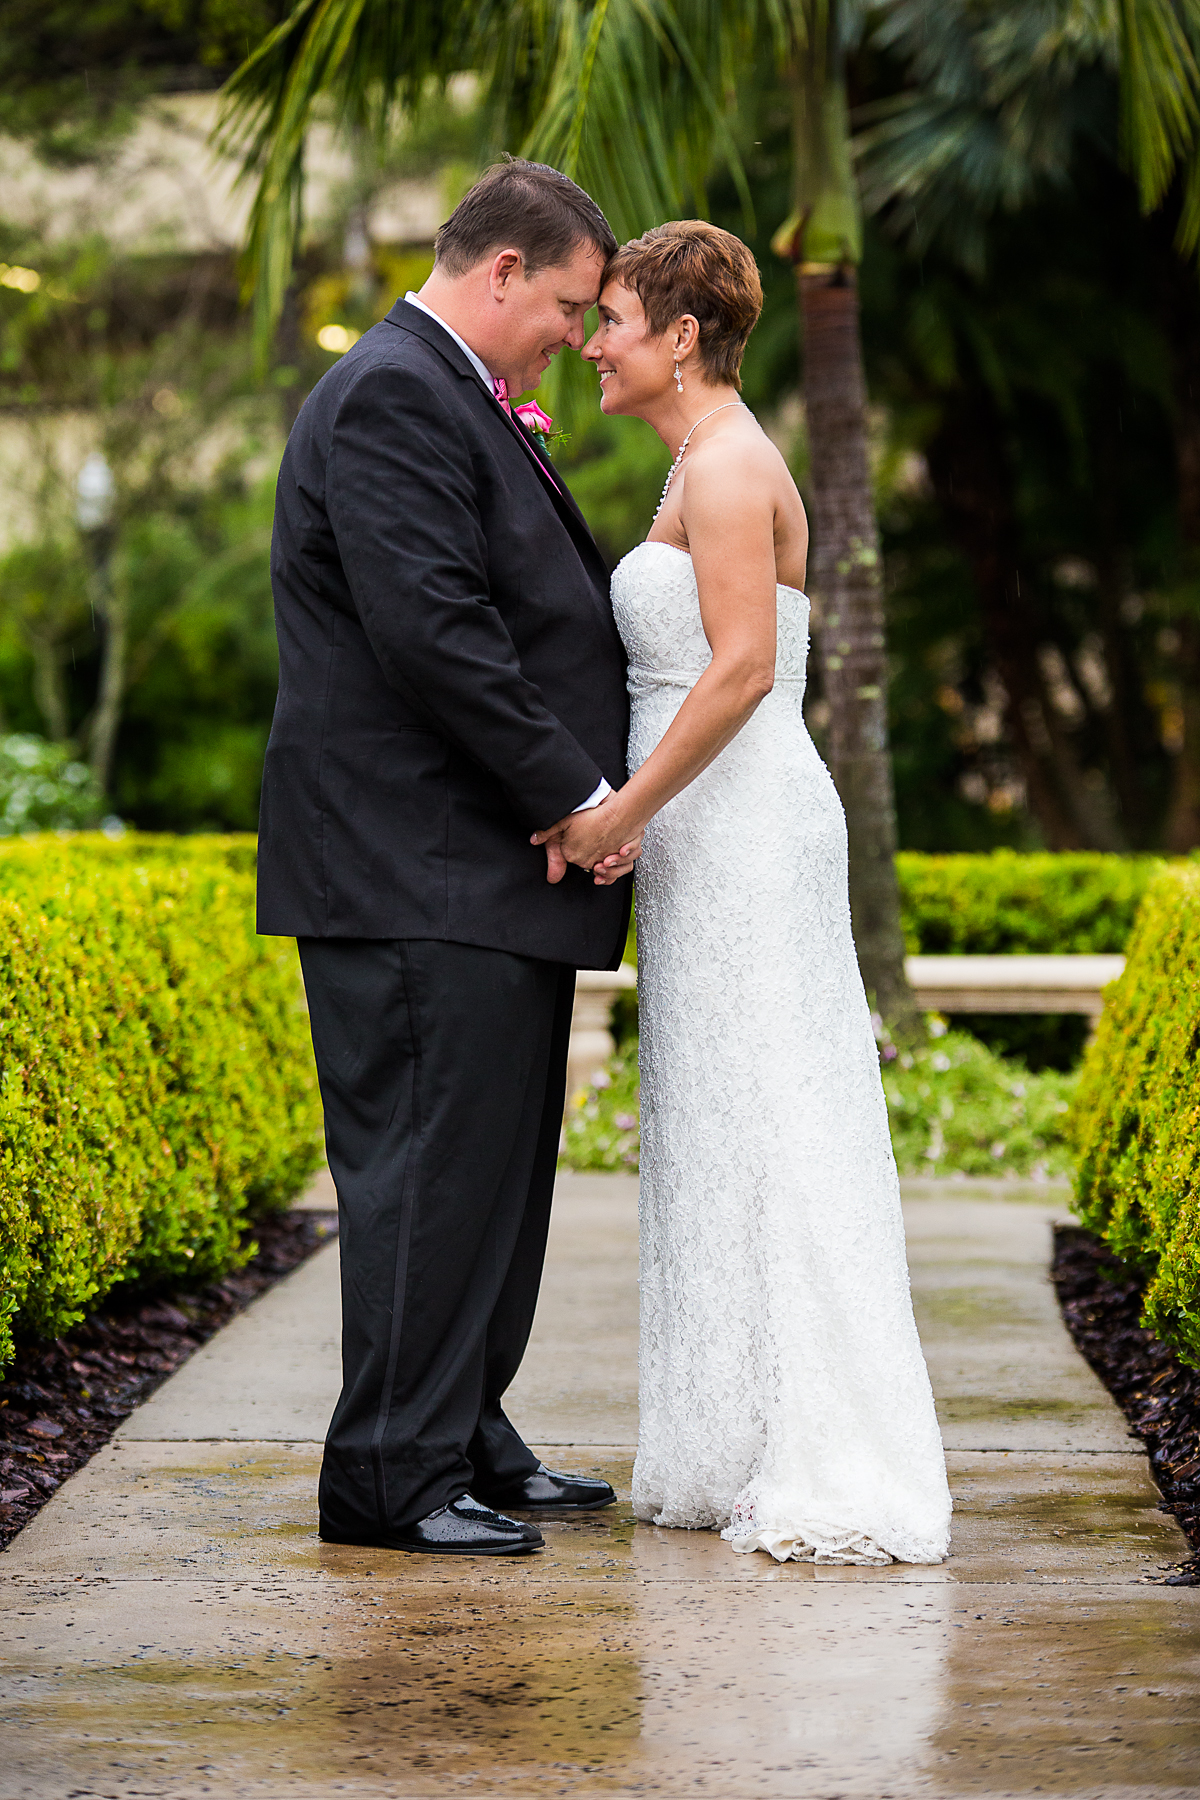 Charlie Brown Photography Citrus County Wedding Photography in Lakeland,FL